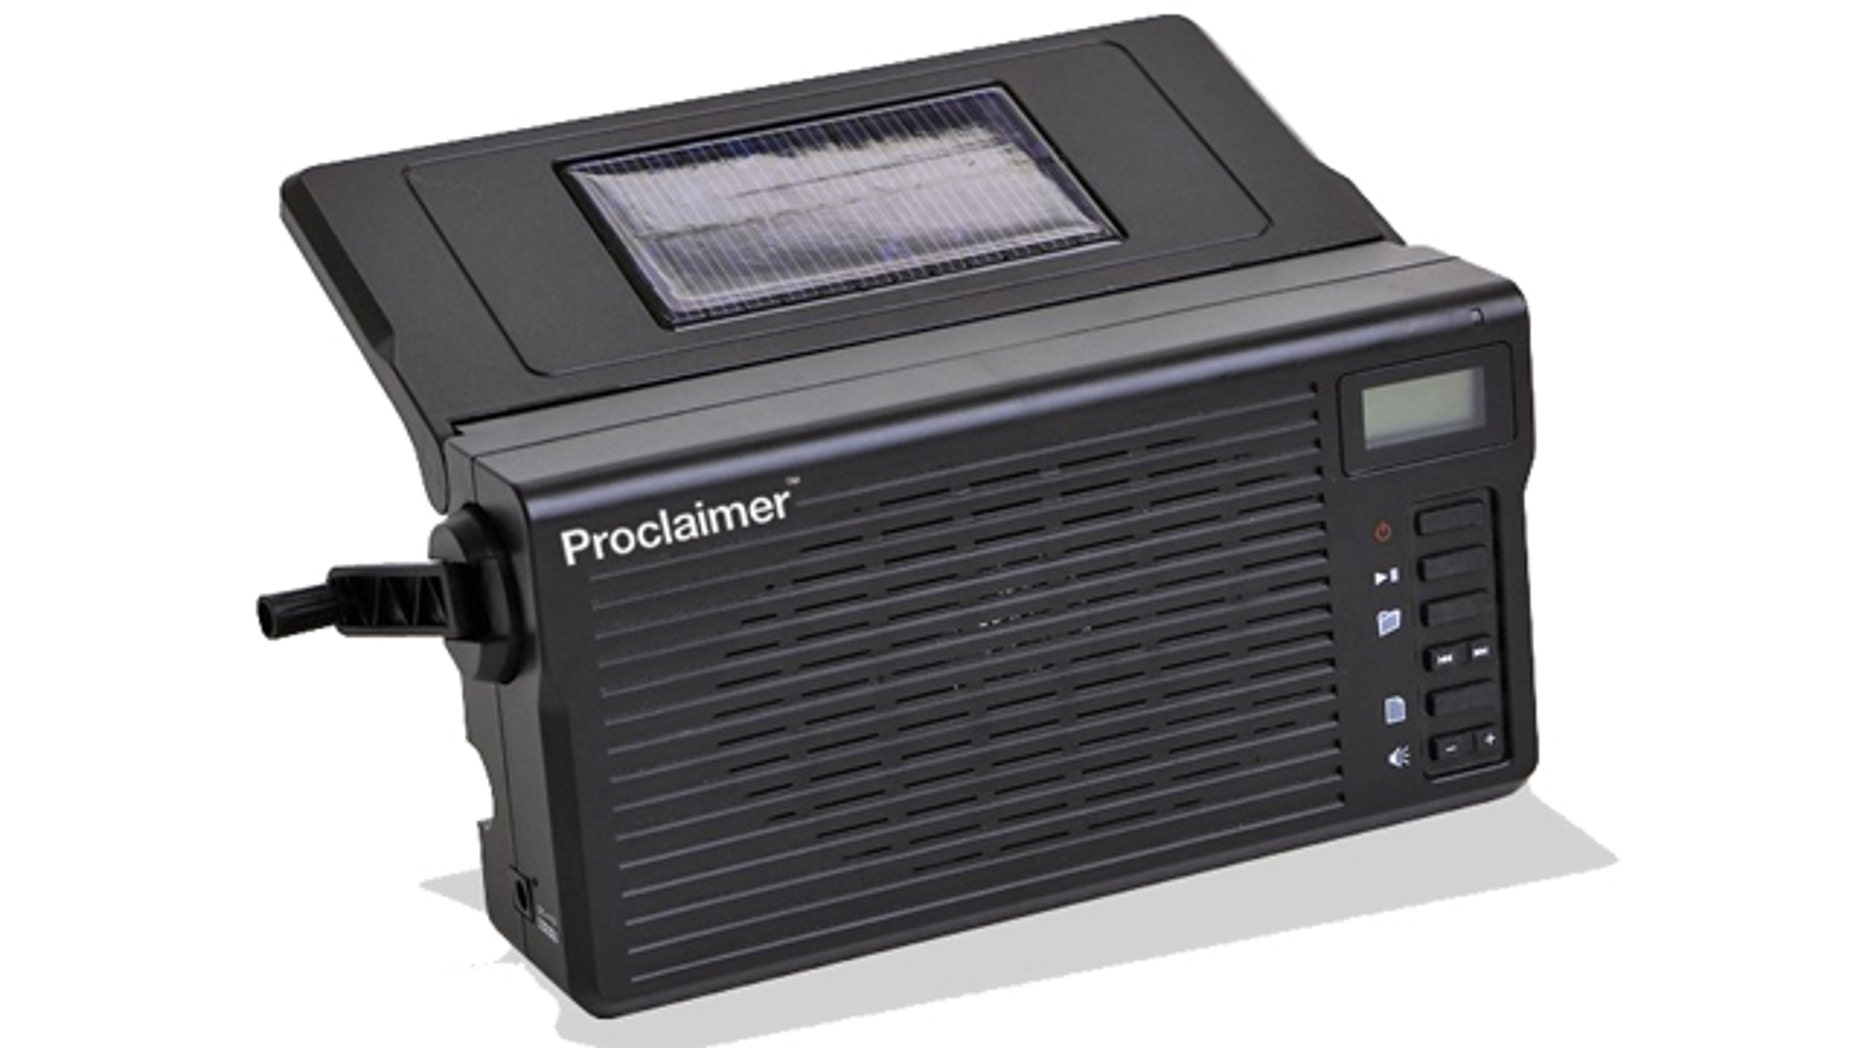 The inspiration for the Proclaimer -- a solar-powered talking Bible -- came during three days of fasting and prayer by the entire staff of Faith Comes By Hearing.